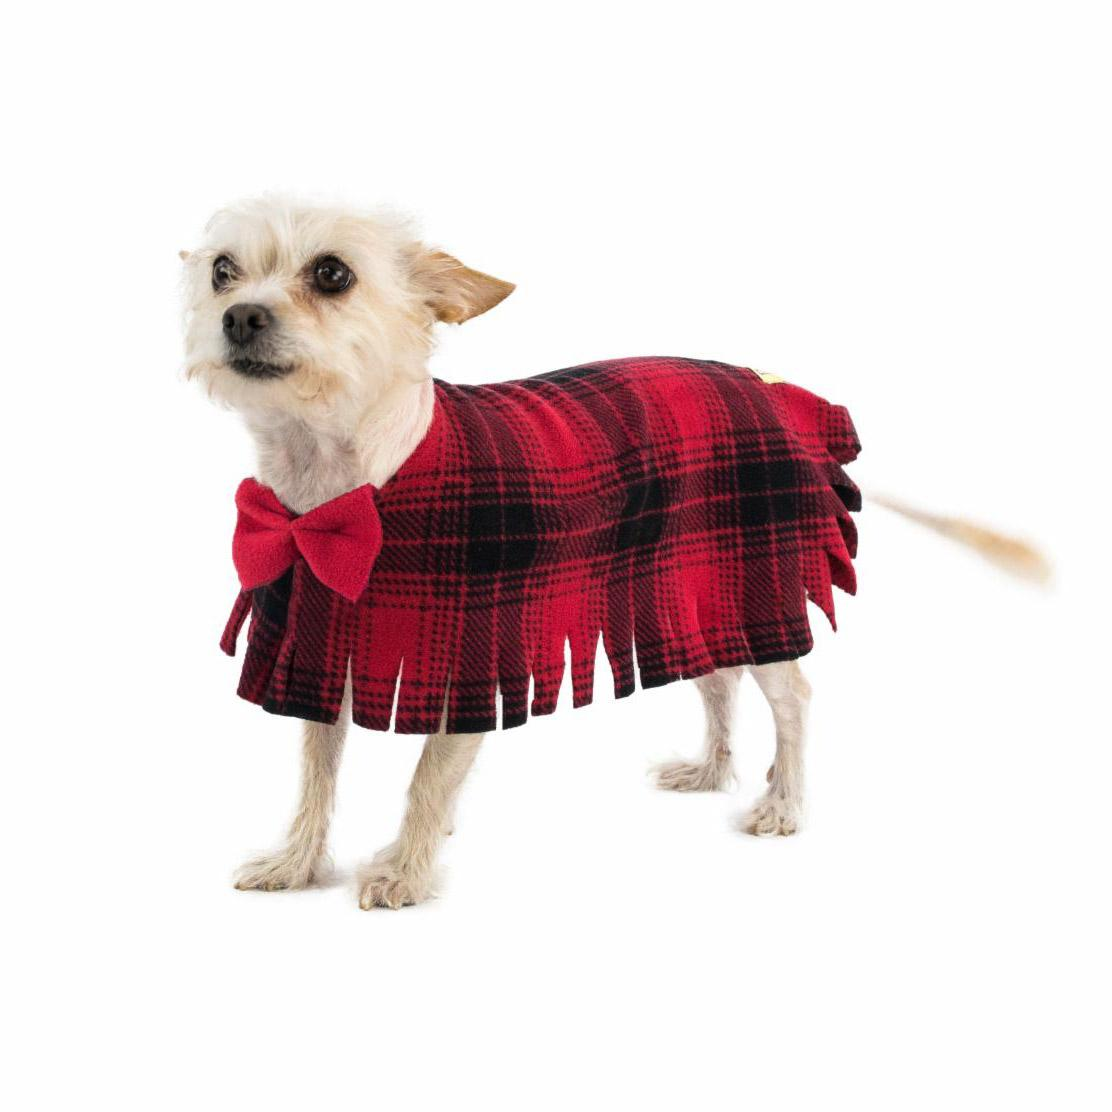 Fleece Dog Poncho by Poocho - Red Plaid with Bow